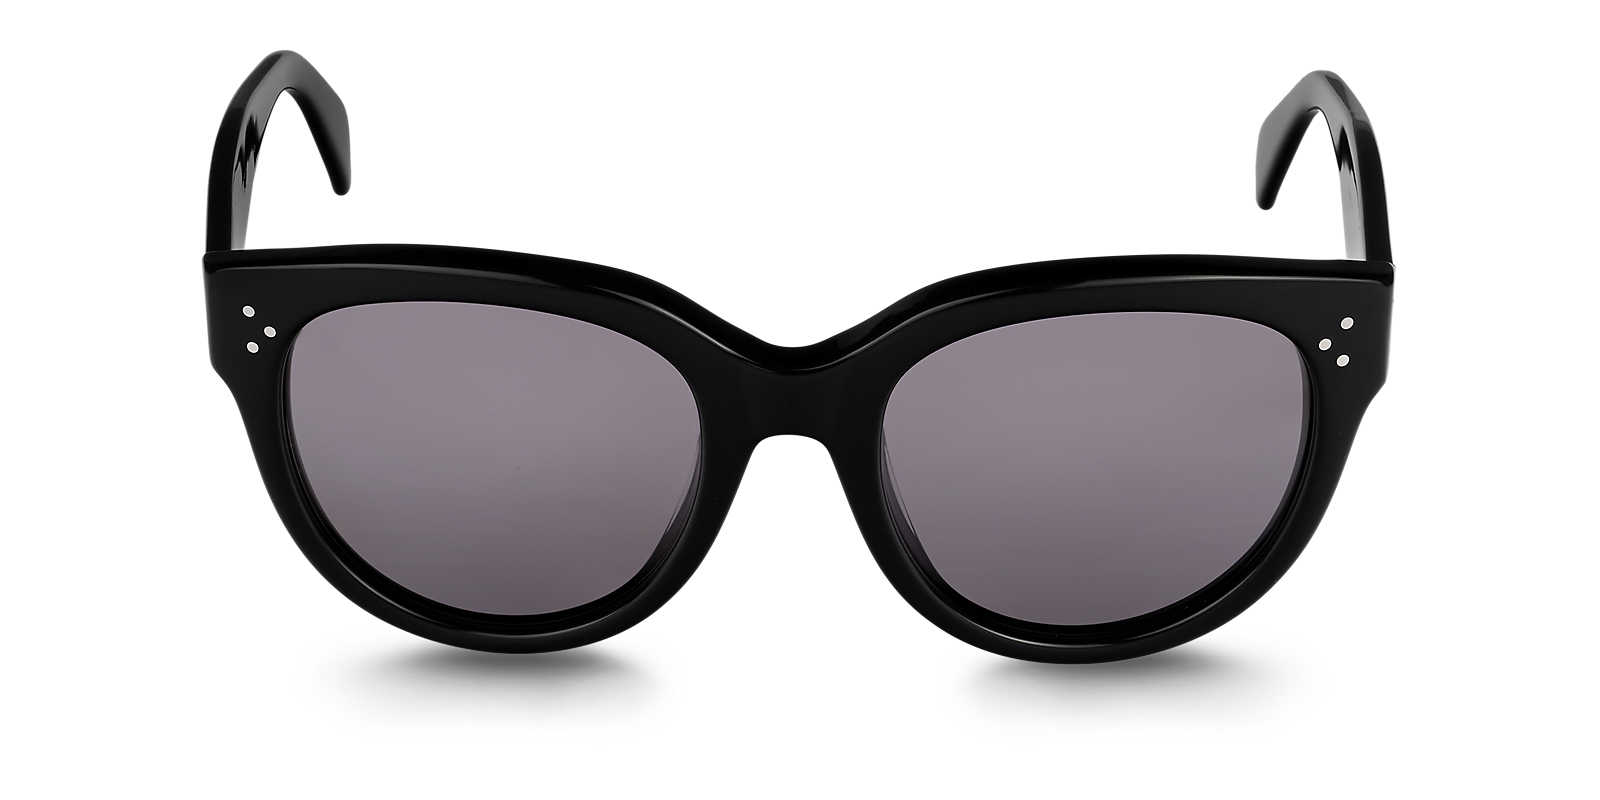 Image result for celine sunglasses